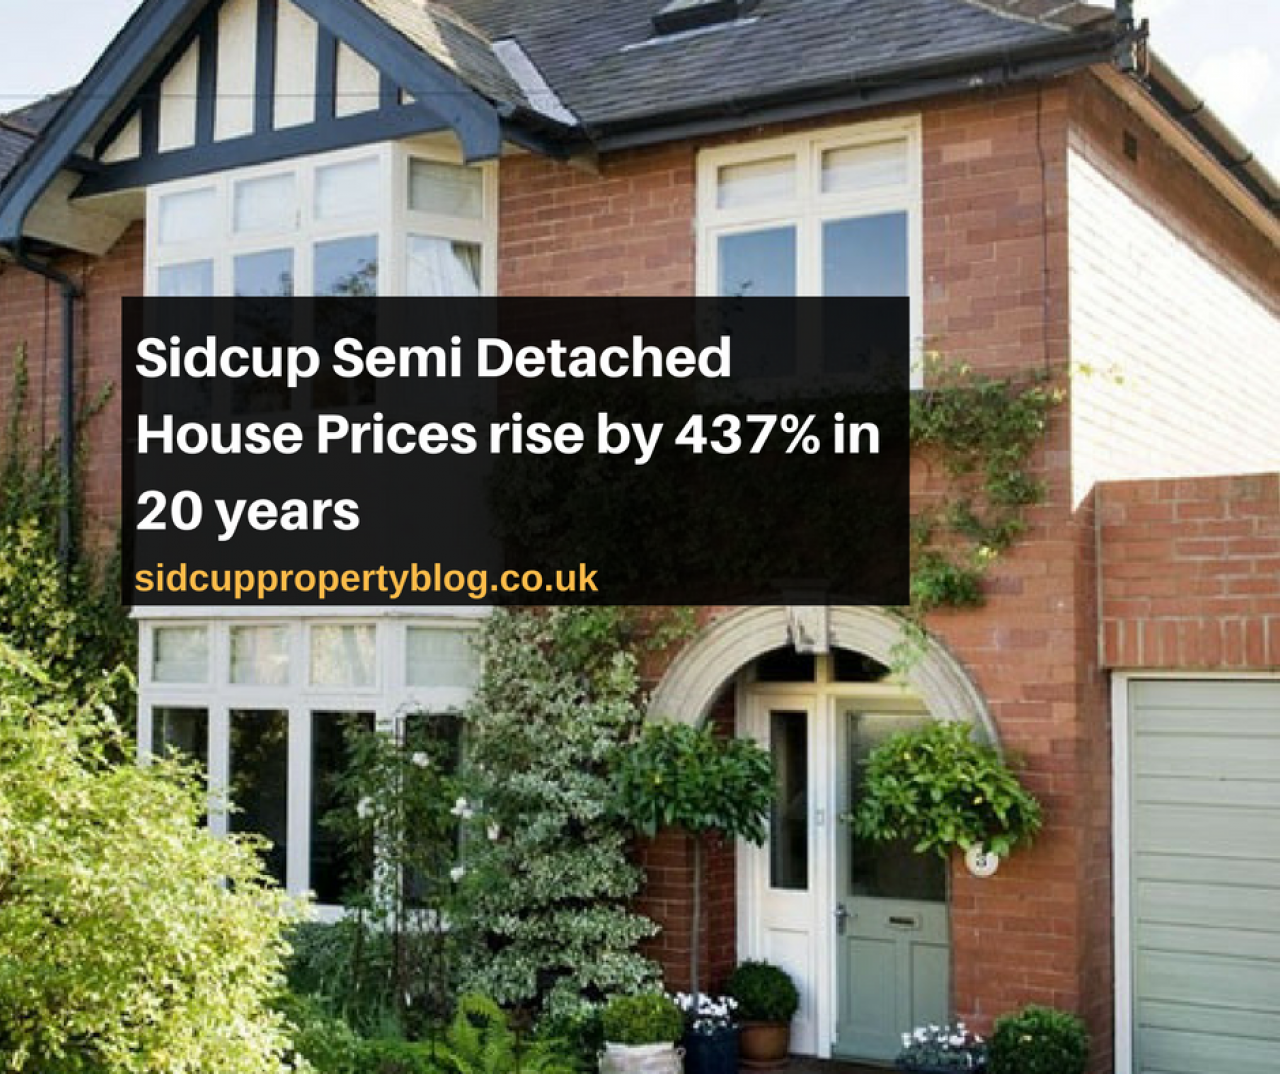 >Sidcup Semi Detached House...